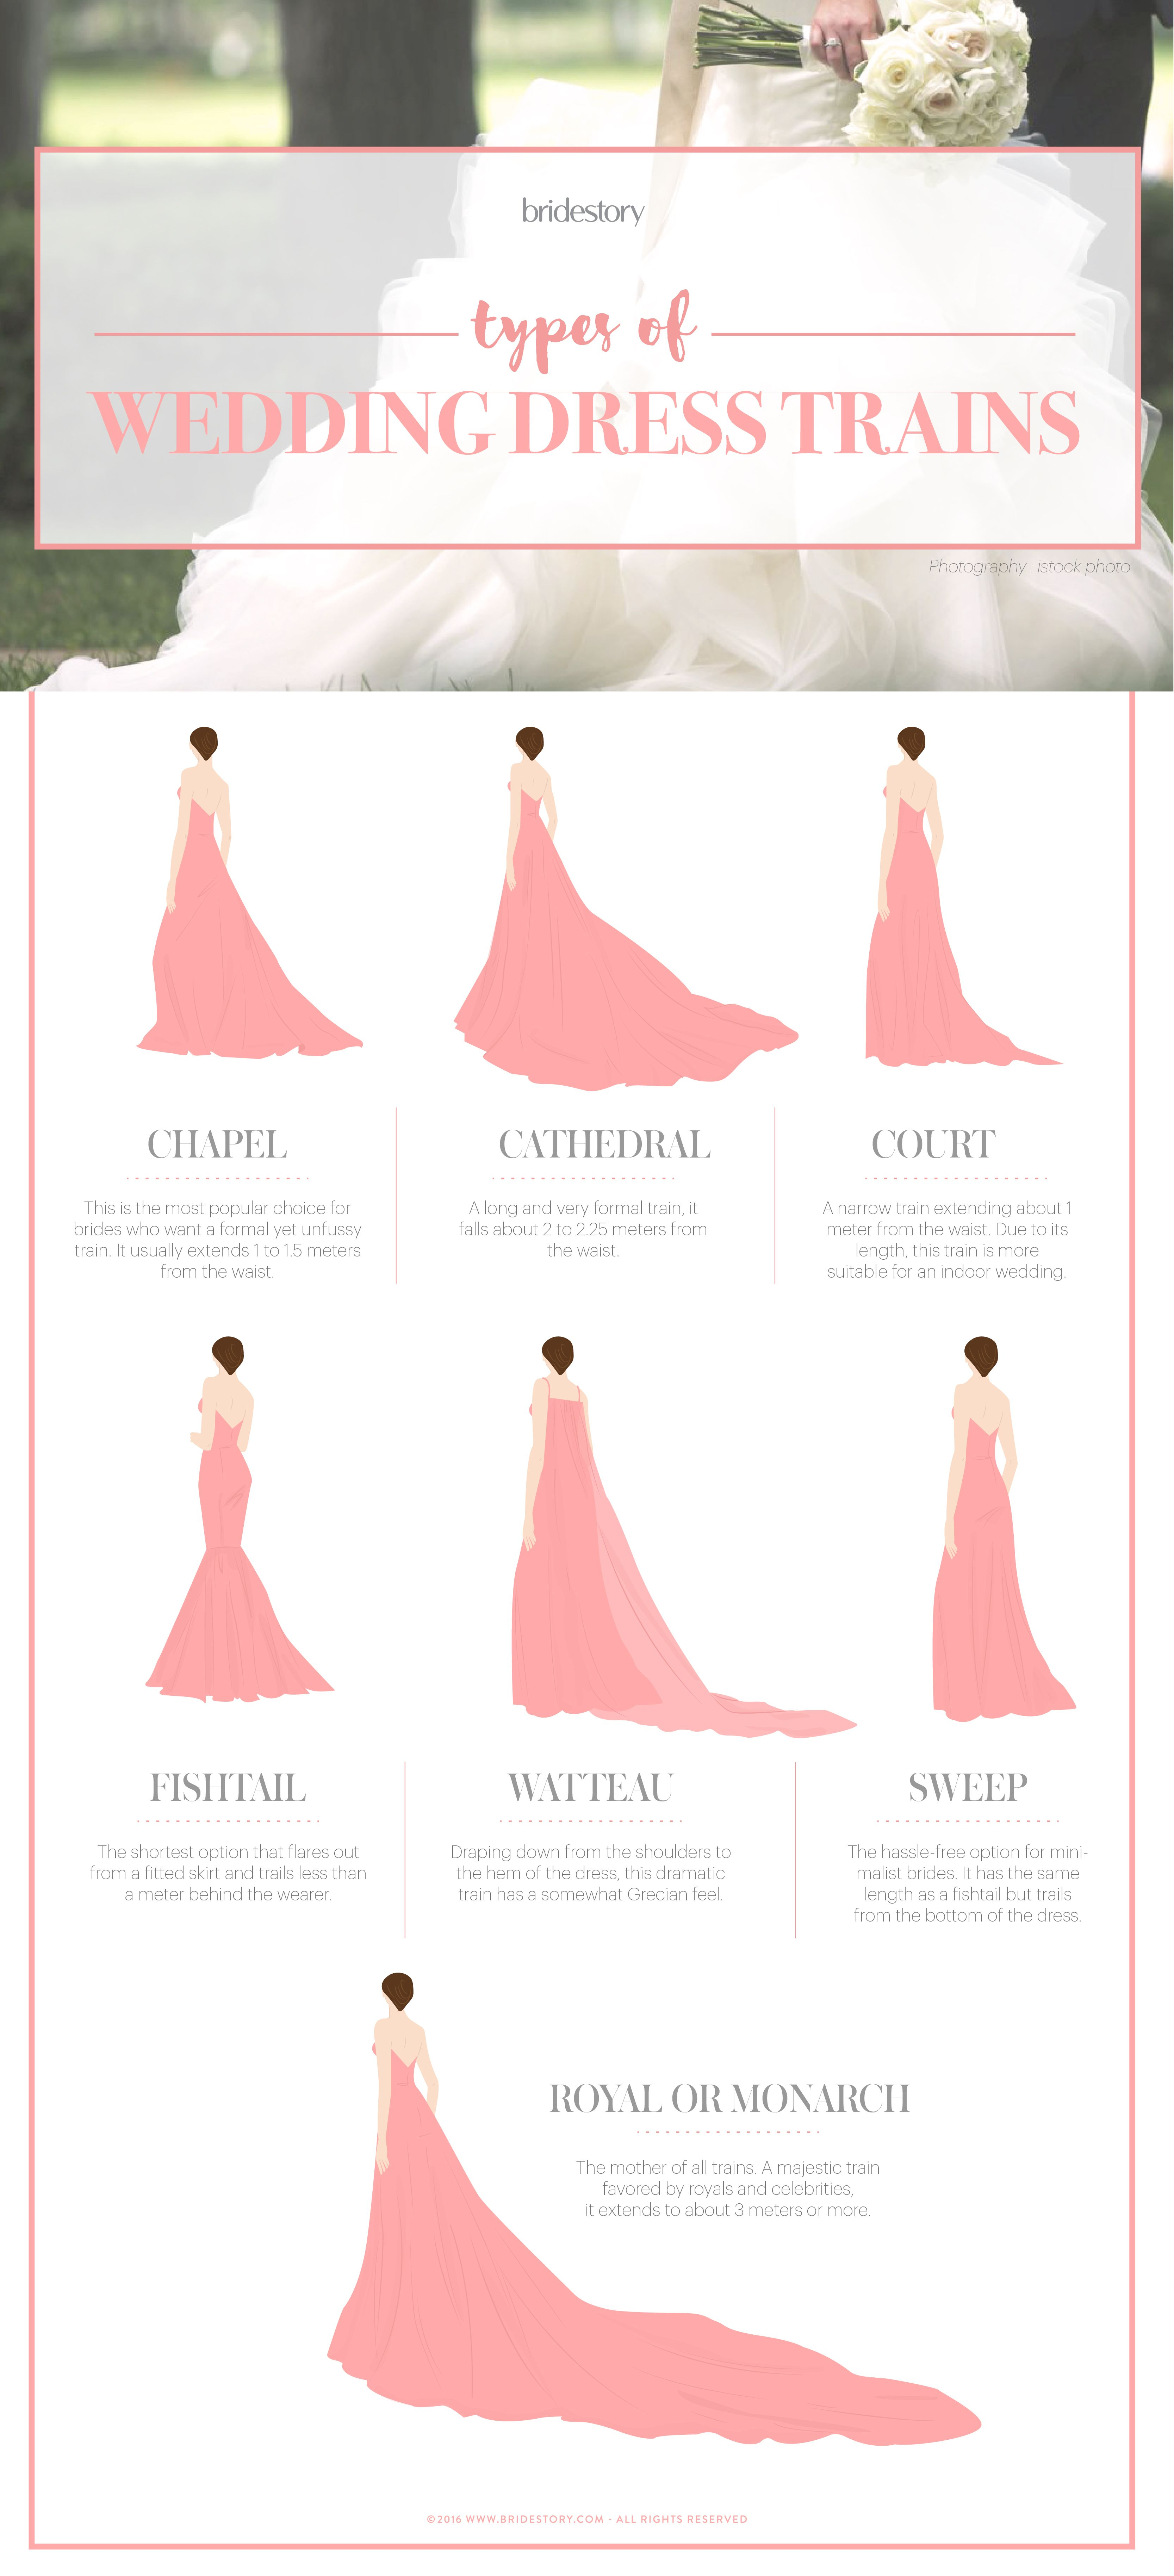 The Bride's Guide to Finding the Perfect Wedding Dress Image 3